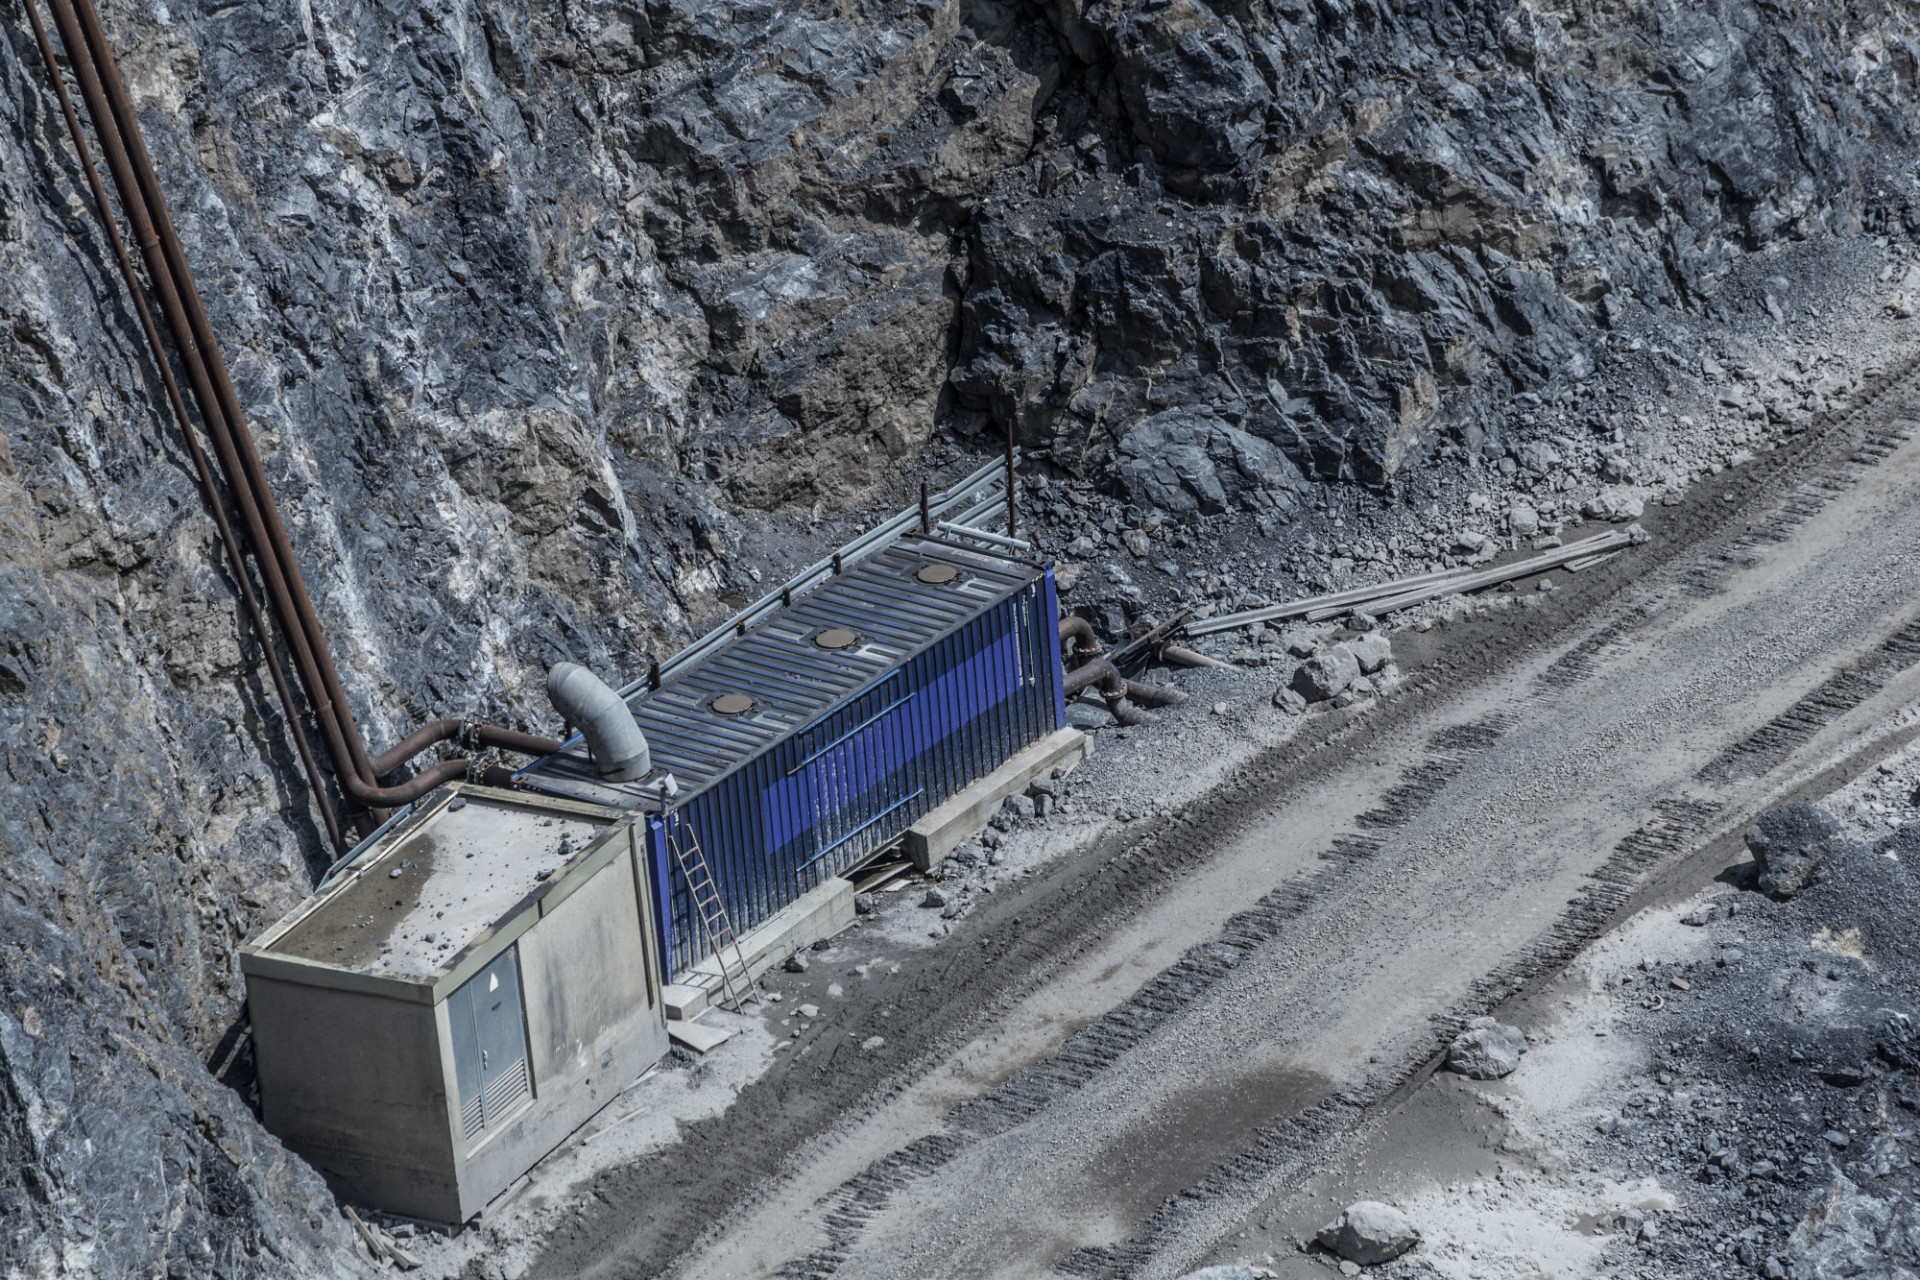 Container in a quarry